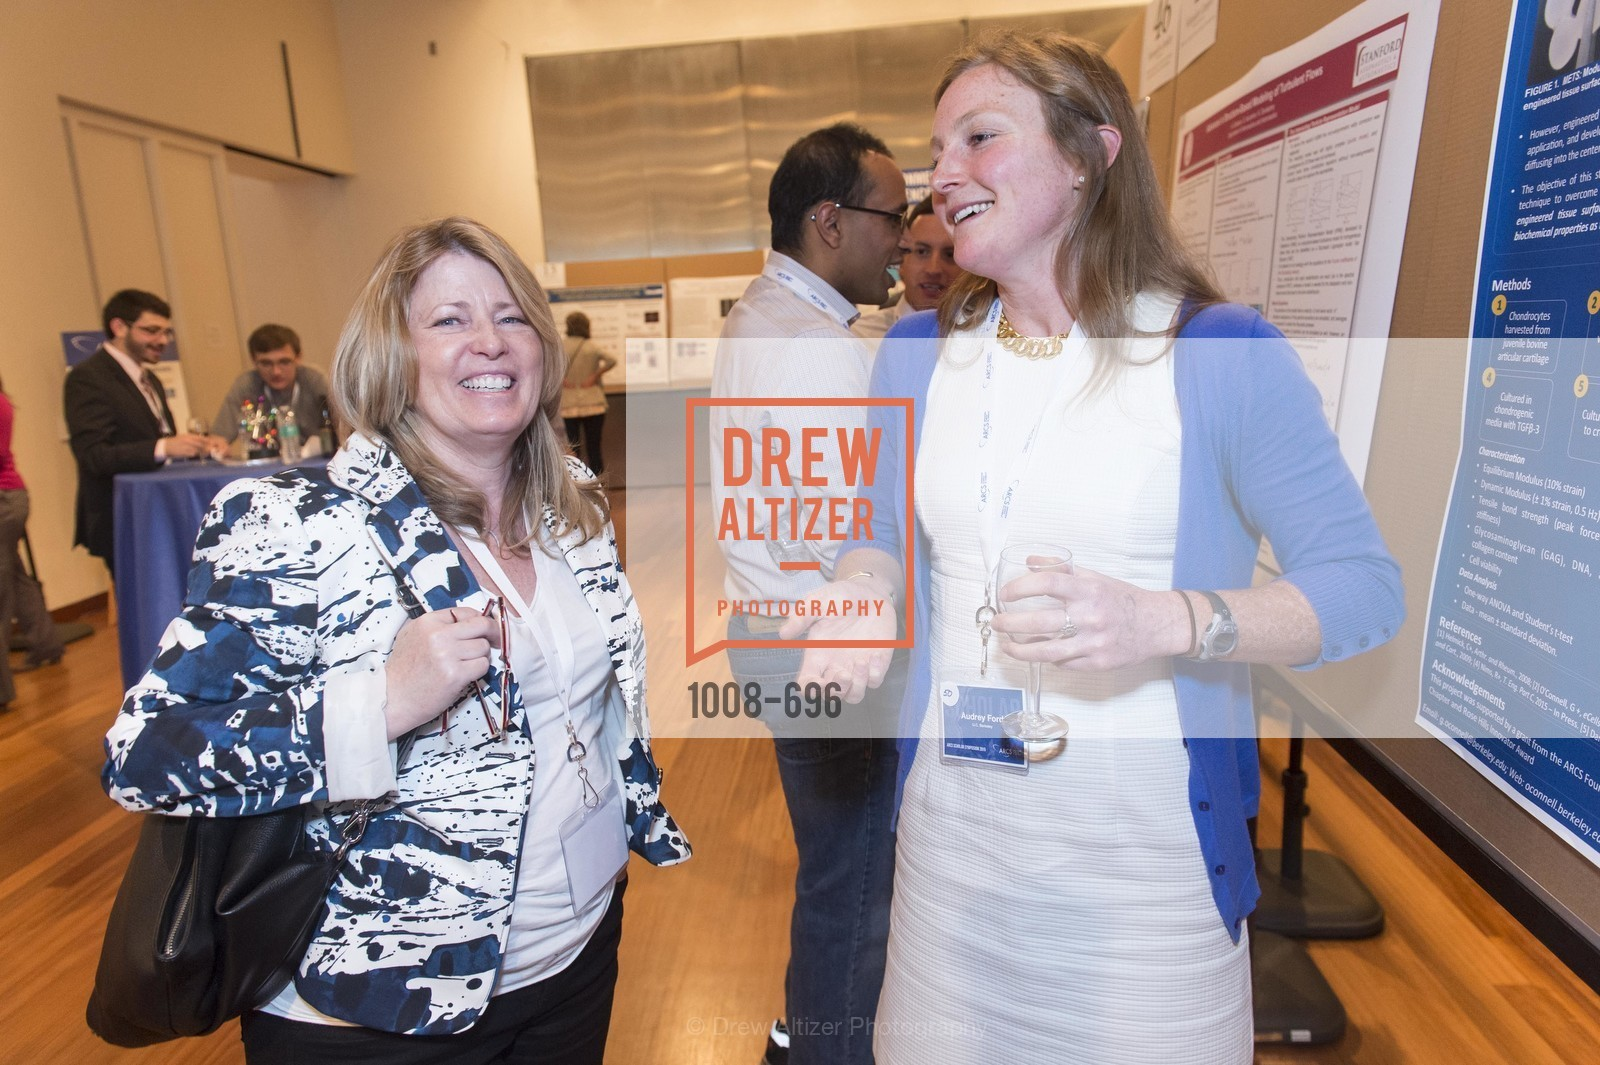 Debbie Wreyford, Audrey Ford, ARCS FOUNDATION Scholar Symposium, US, May 5th, 2015,Drew Altizer, Drew Altizer Photography, full-service agency, private events, San Francisco photographer, photographer california